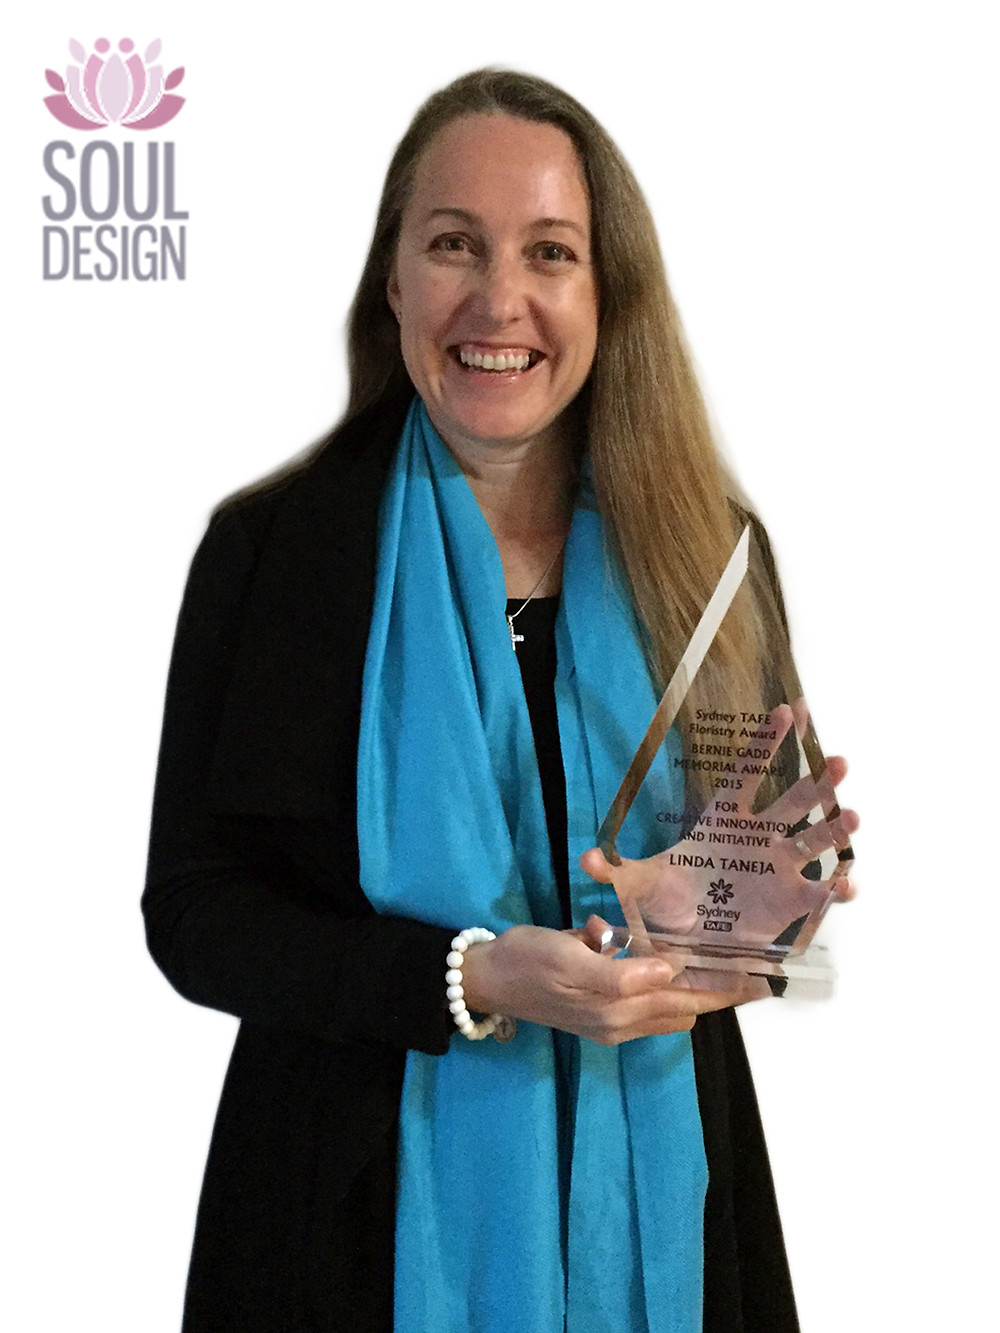 Linda received Award for Creative Innovation and Initiative